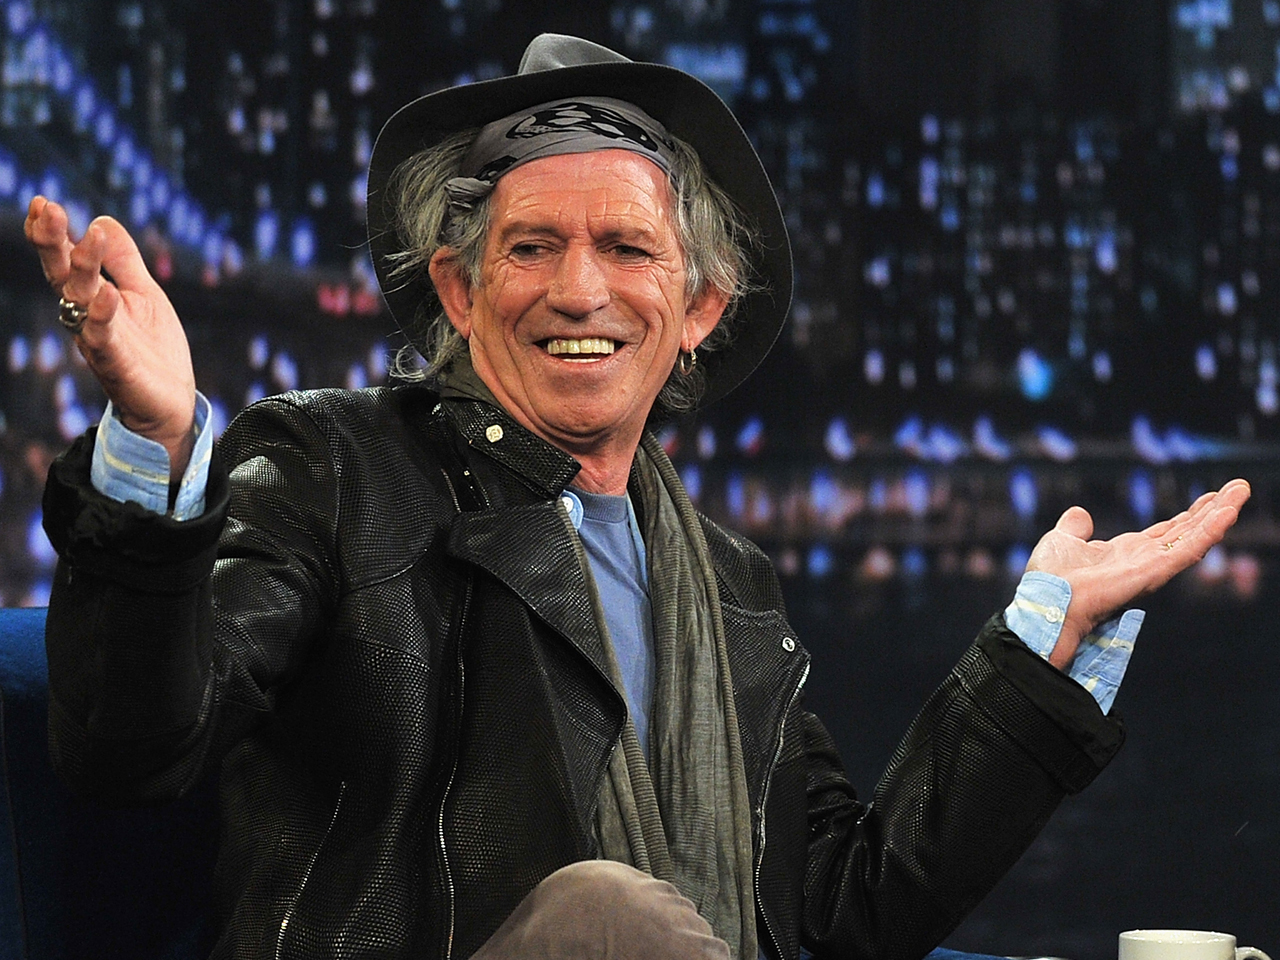 Image: Keith Richards